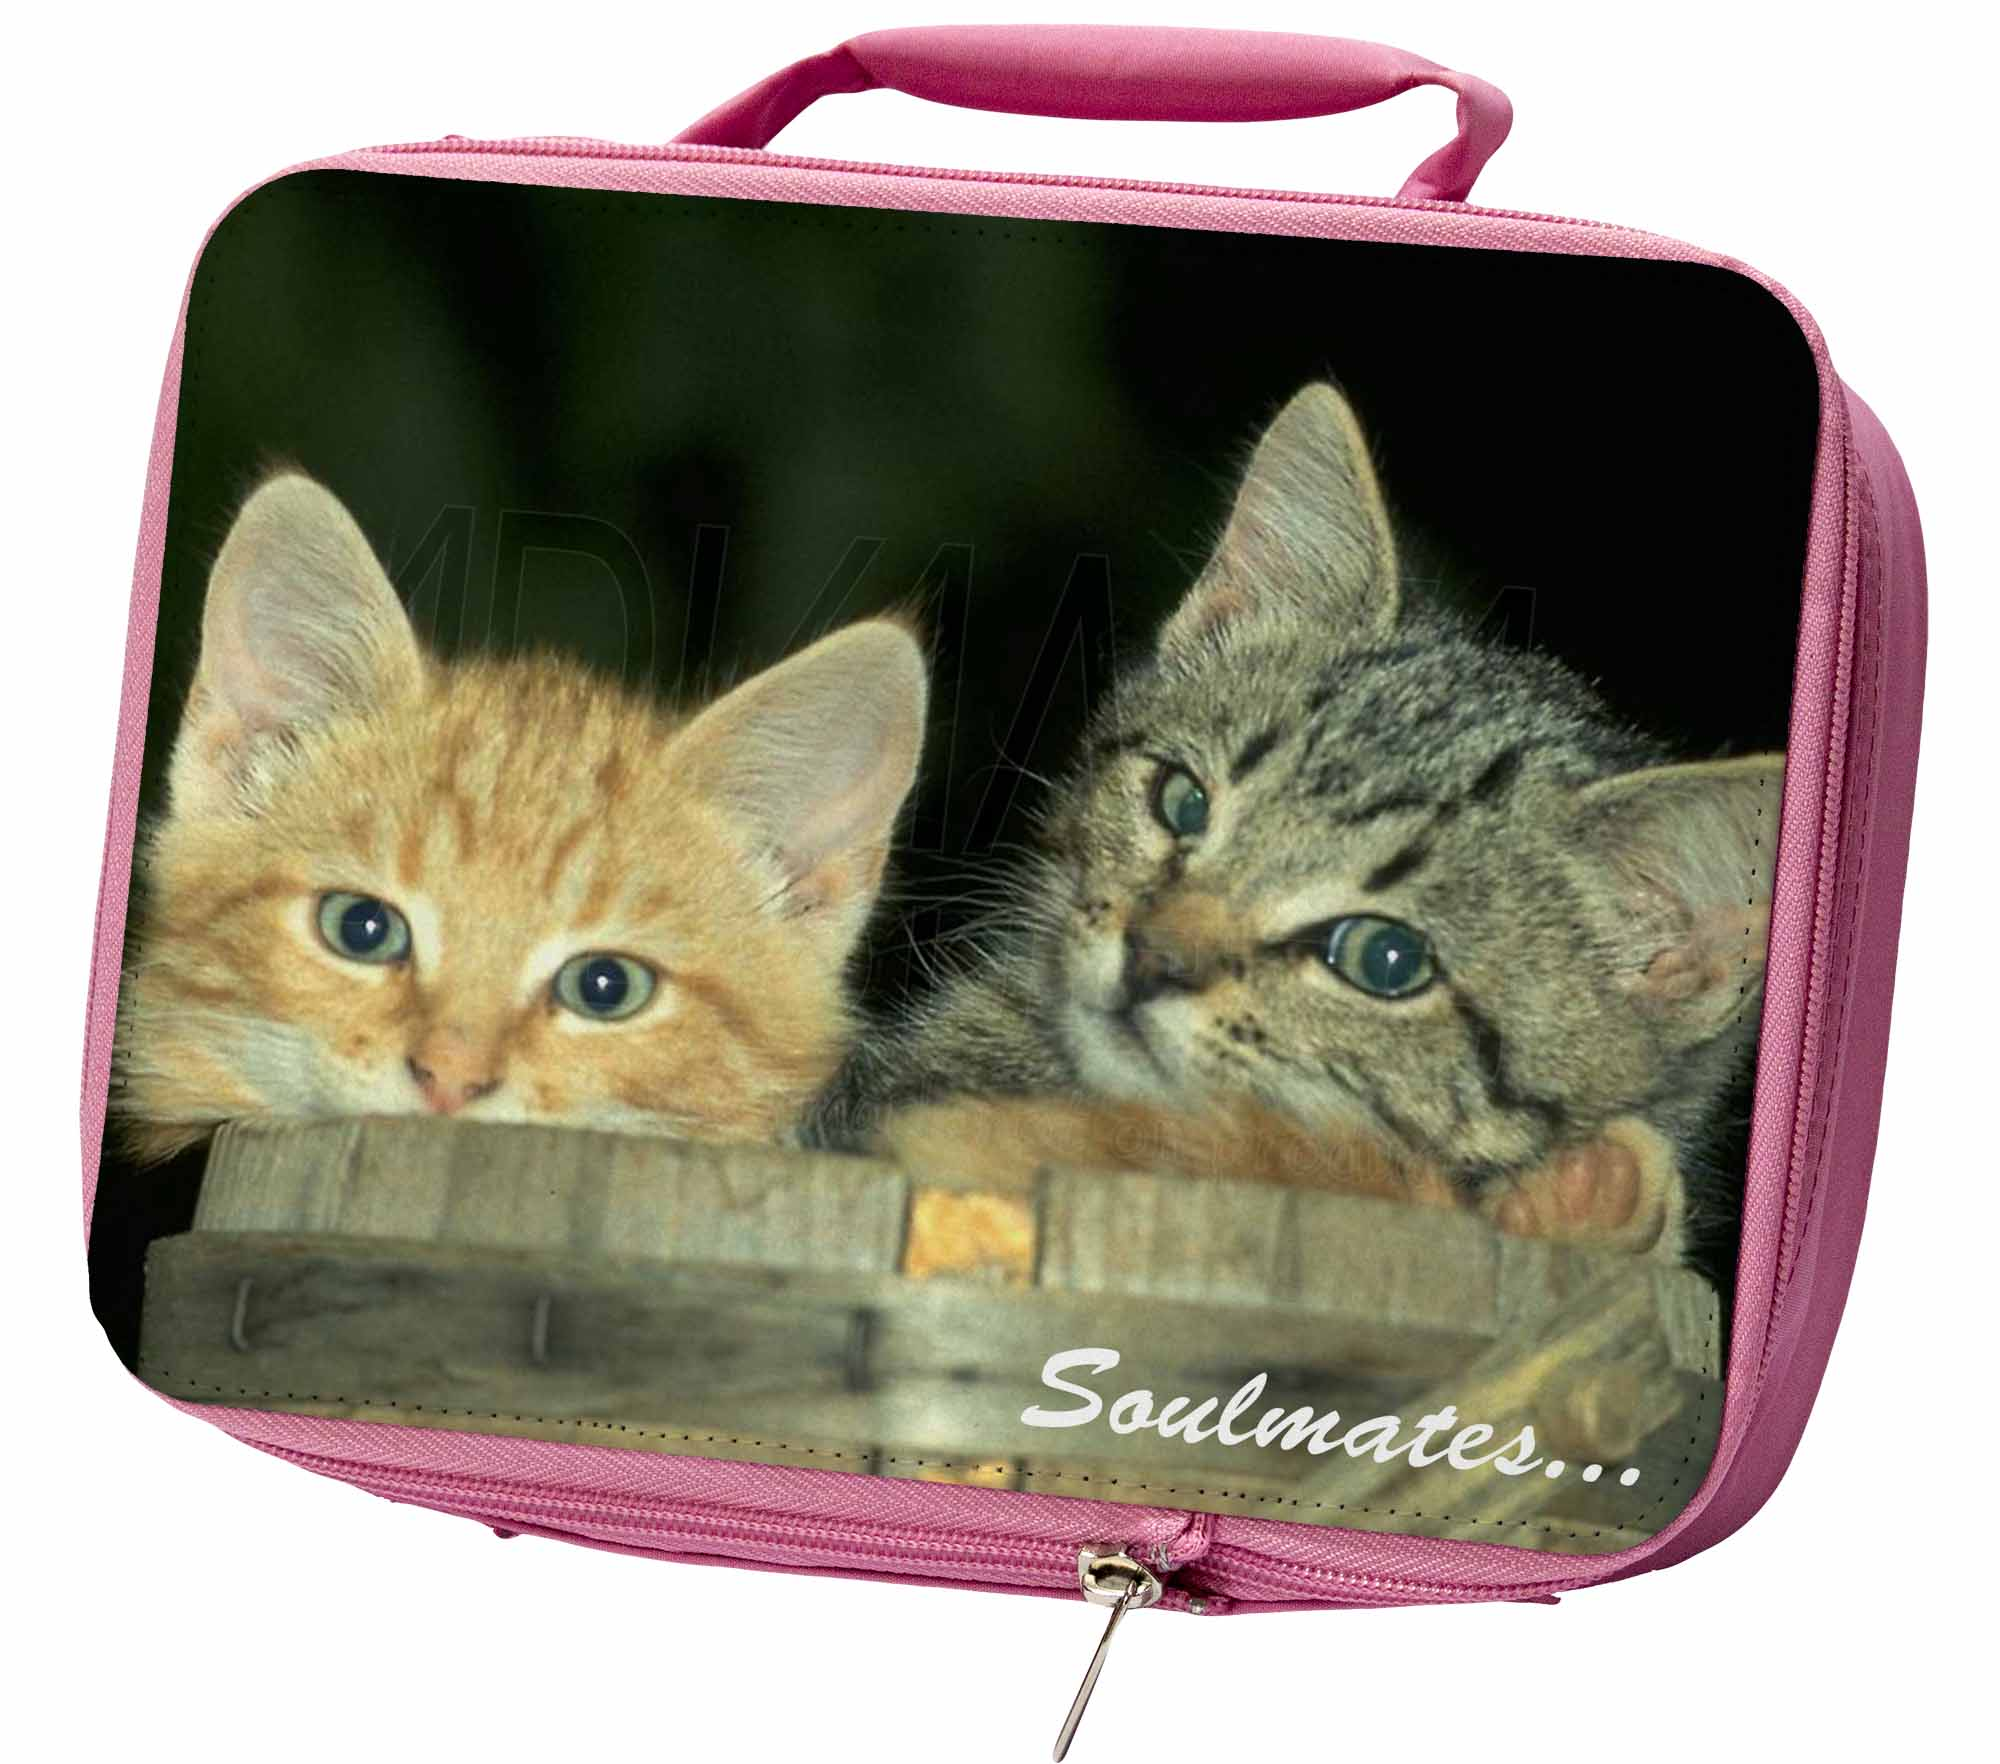 'soulmates' Kittens In Beer Barrel Insulated Pink School Lunch Box B, Soul-14lbp Bianchezza Pura